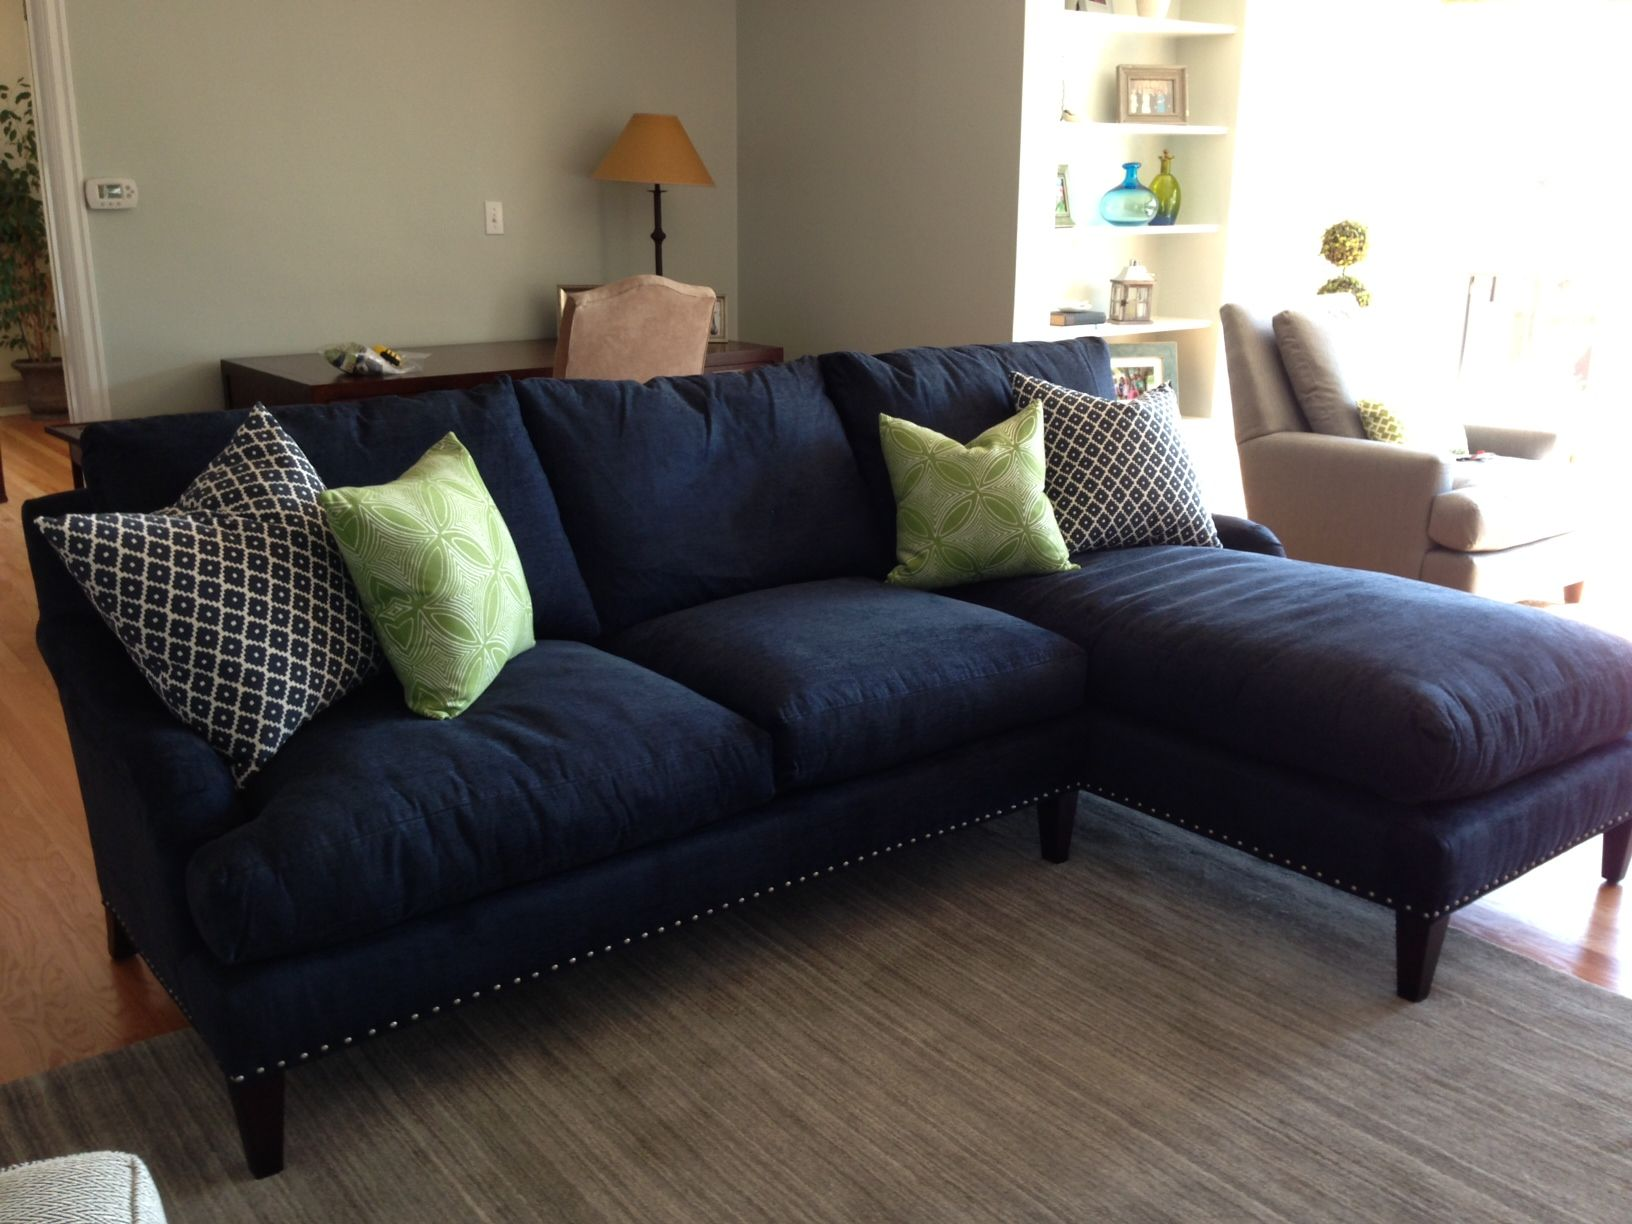 5163 Sectional in Navy w nailhead and green apple toss pillows from